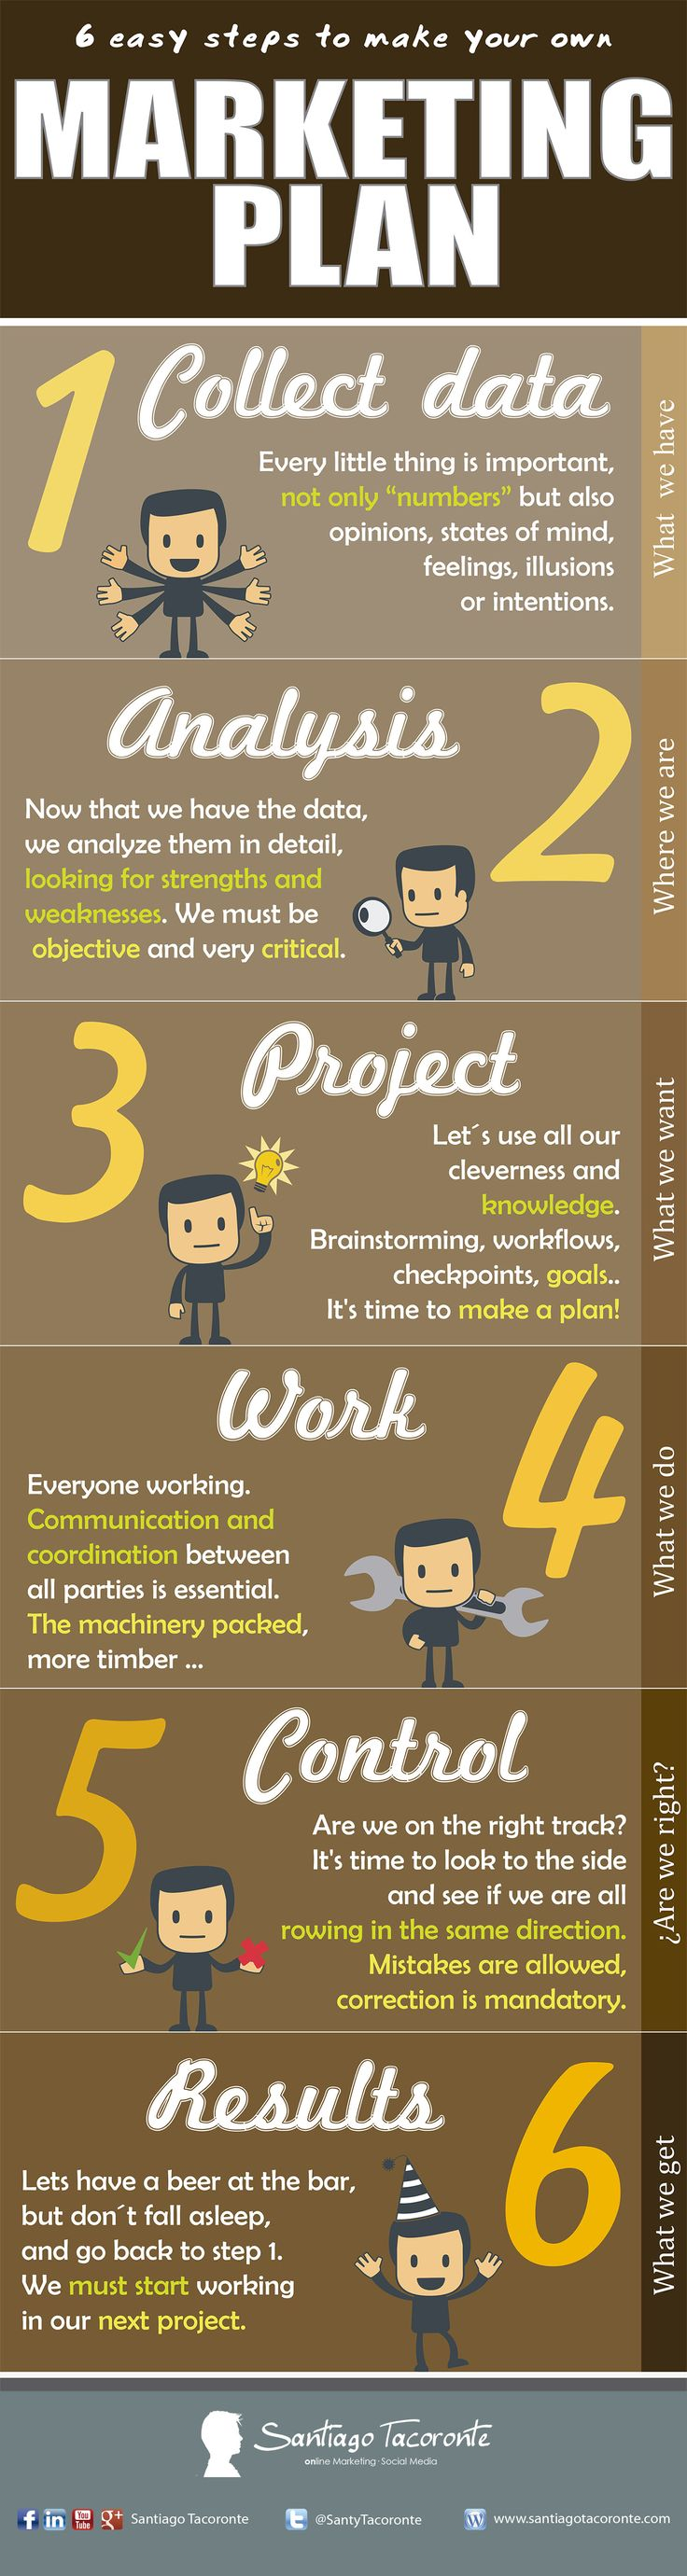 #Infographic: 6 Steps to Create Your Own #Marketing Plan [INFOGRAPHIC] repinned by @Pablo Ilde Coraje